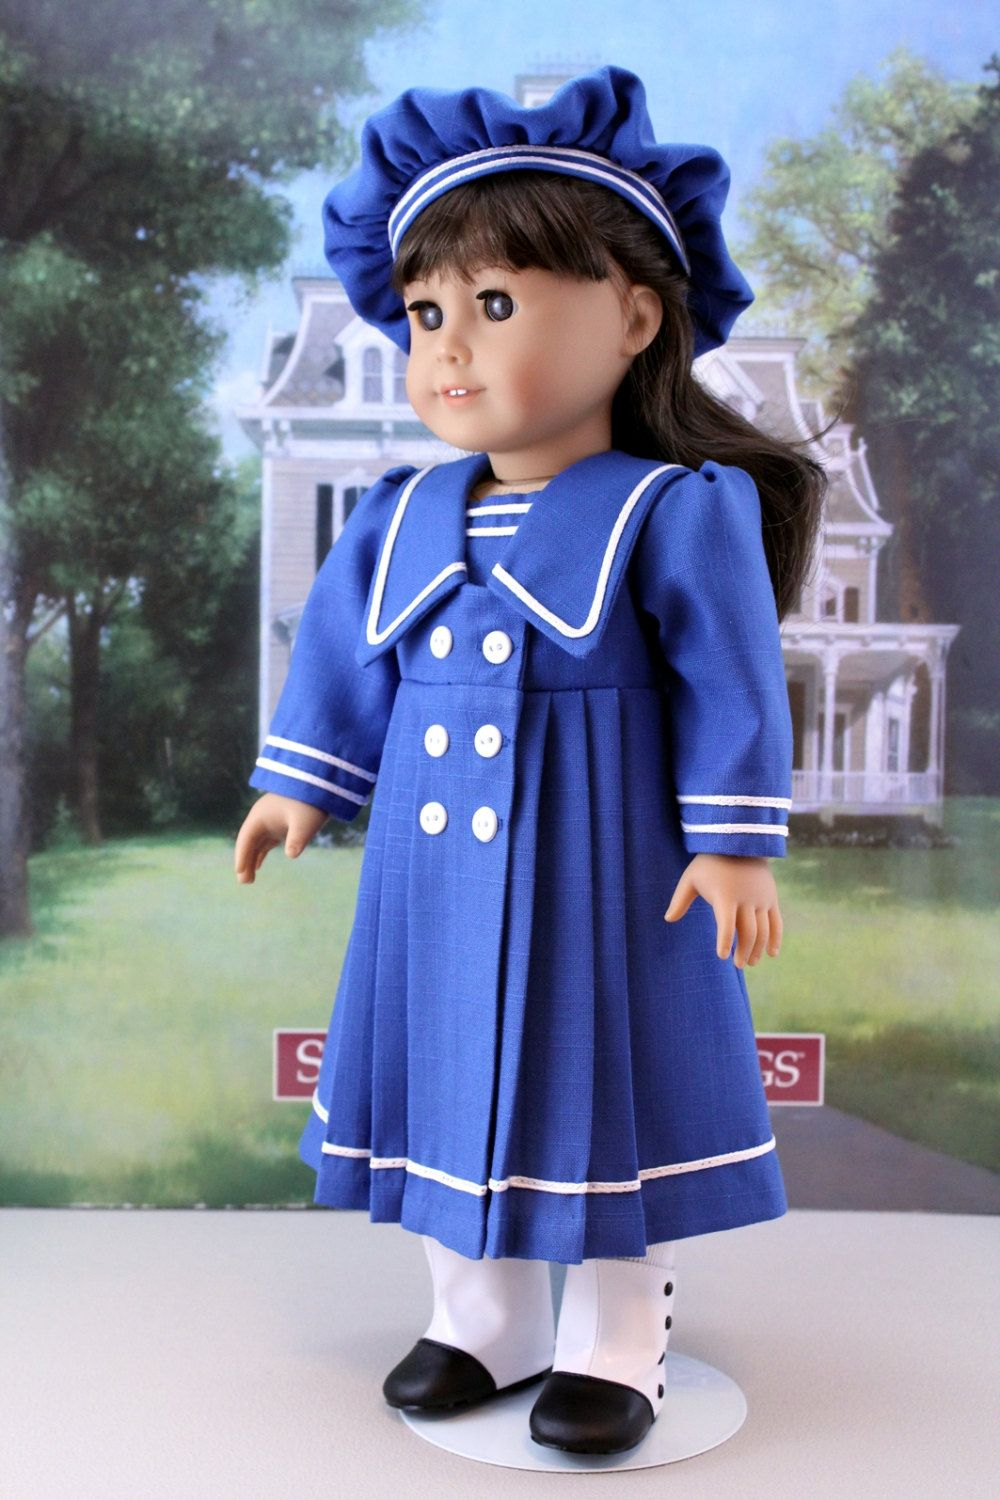 Sailor Style Dress and Hat for Samantha, Rebecca, or other ...